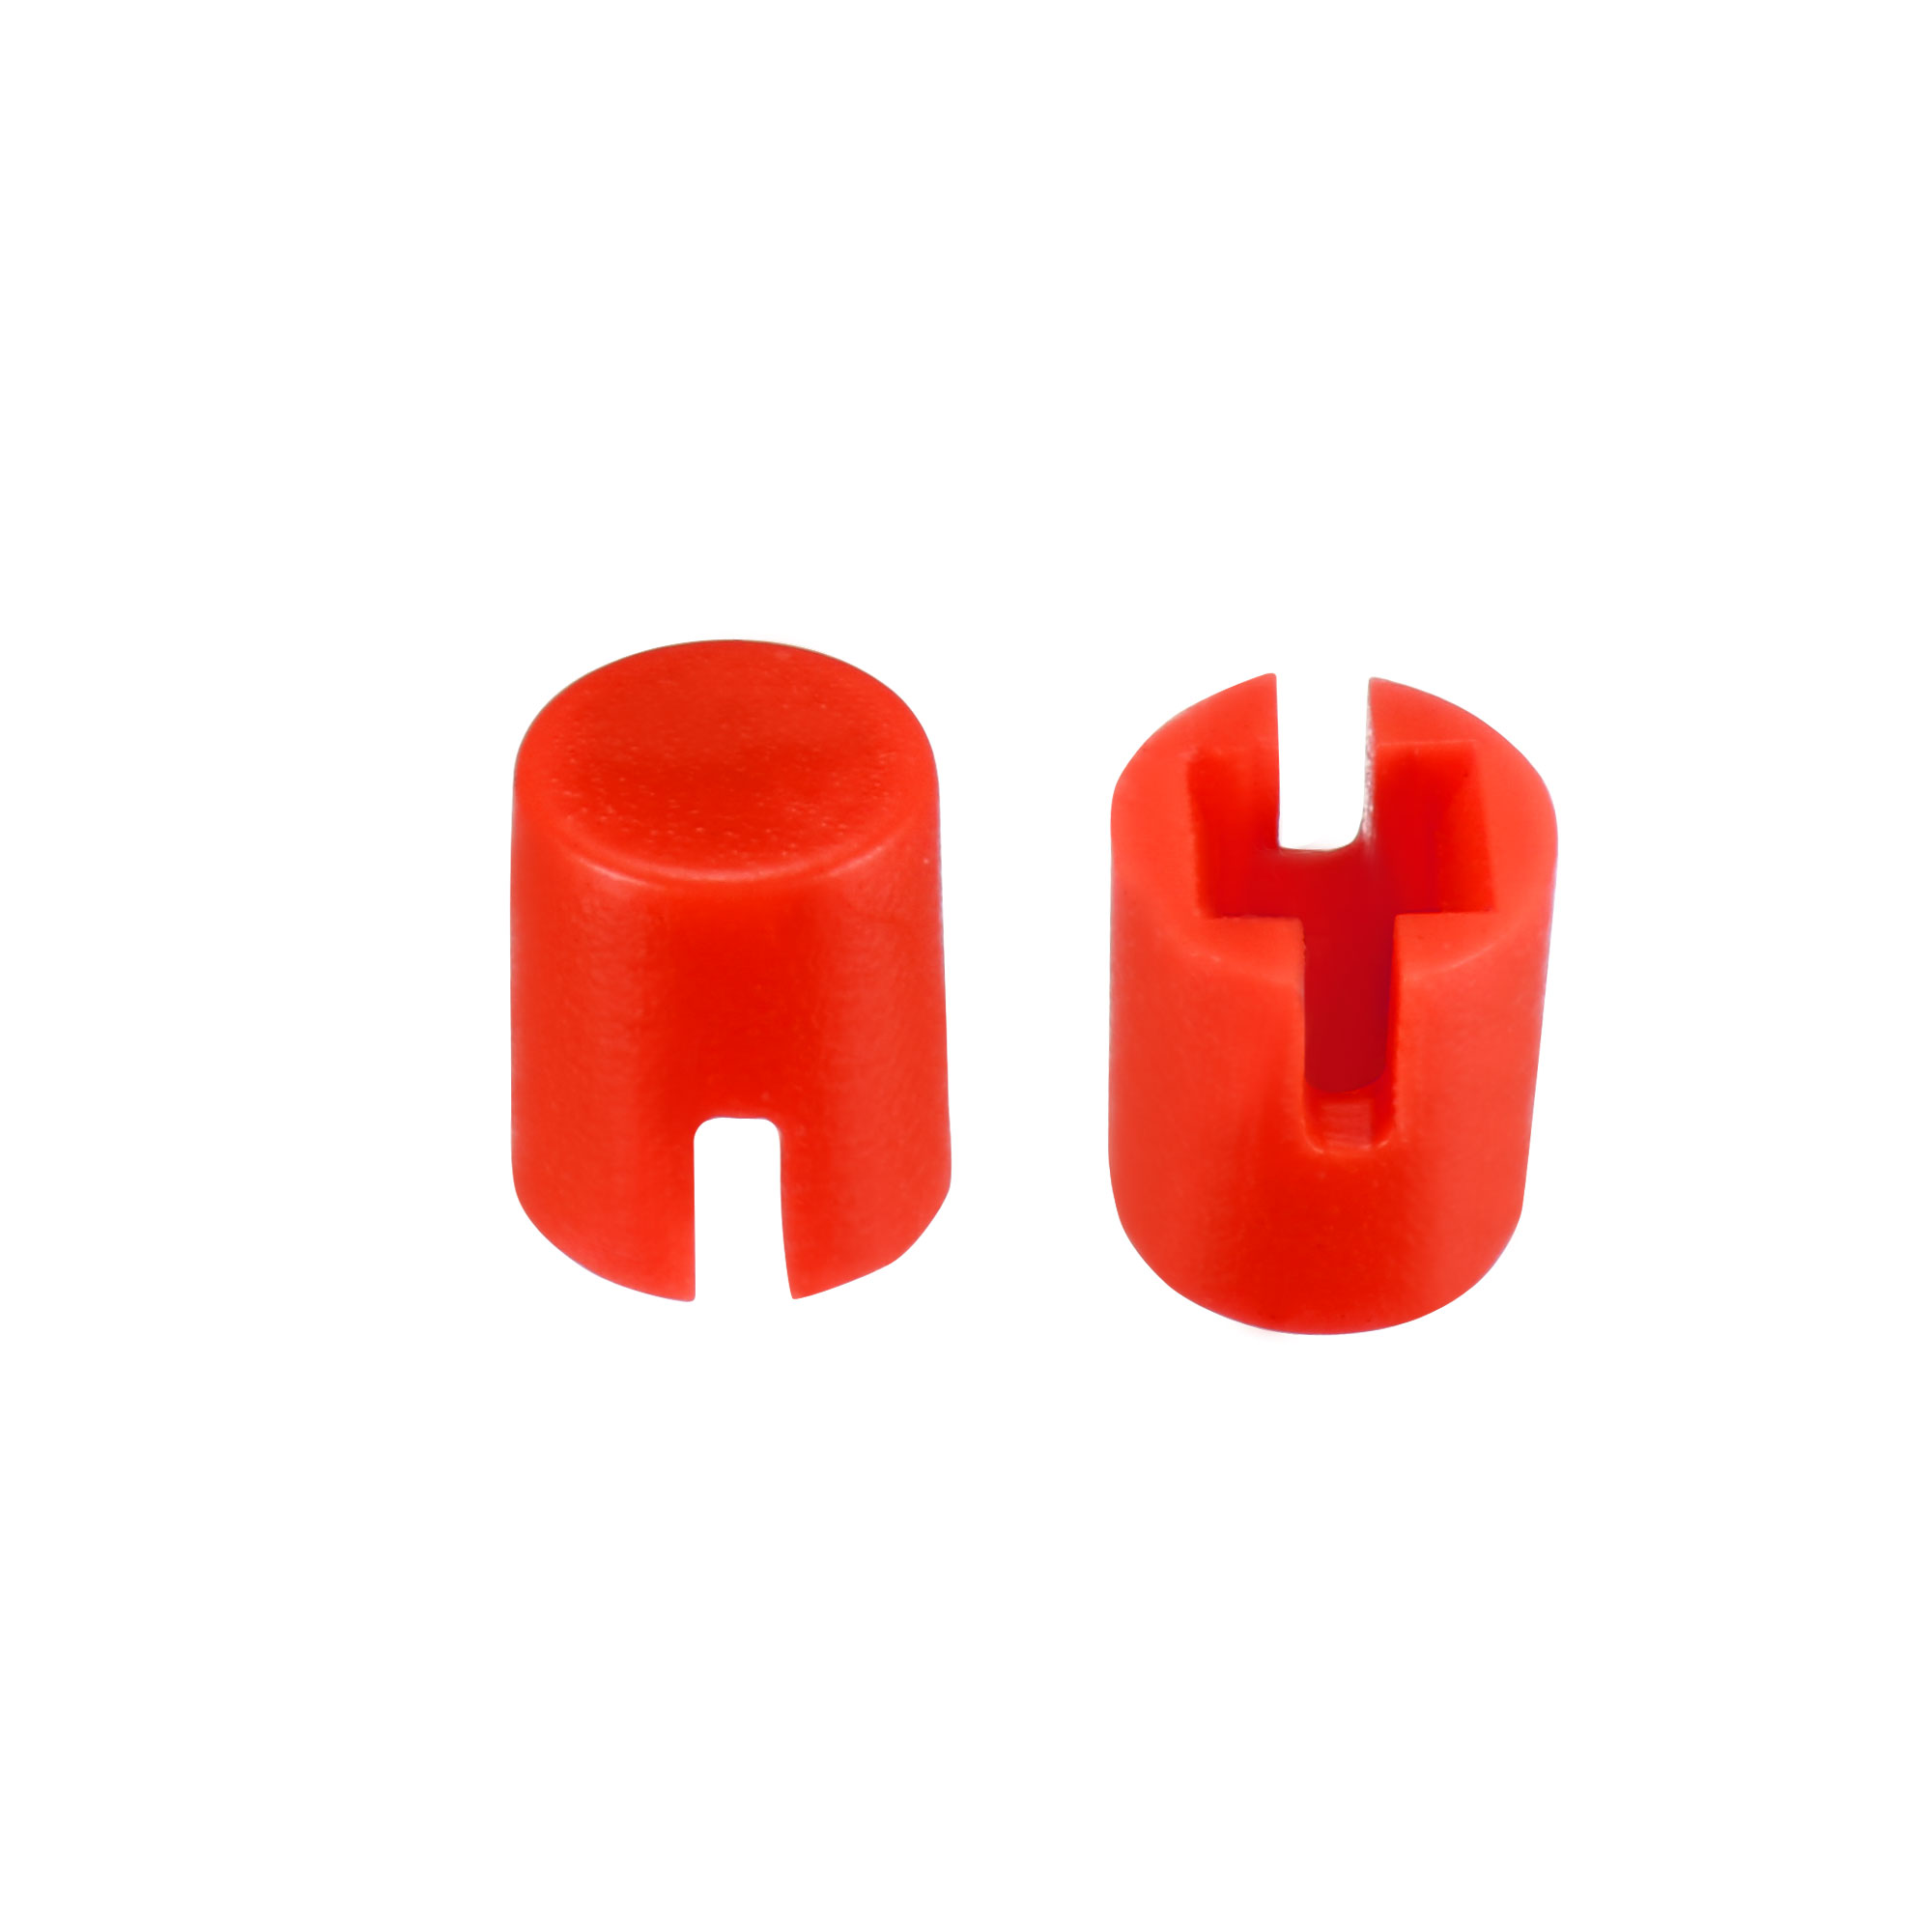 50Pcs 4.6x5.5mm Pushbutton Switch Caps Cover Red for 6x6x7.3mm Tact Switch